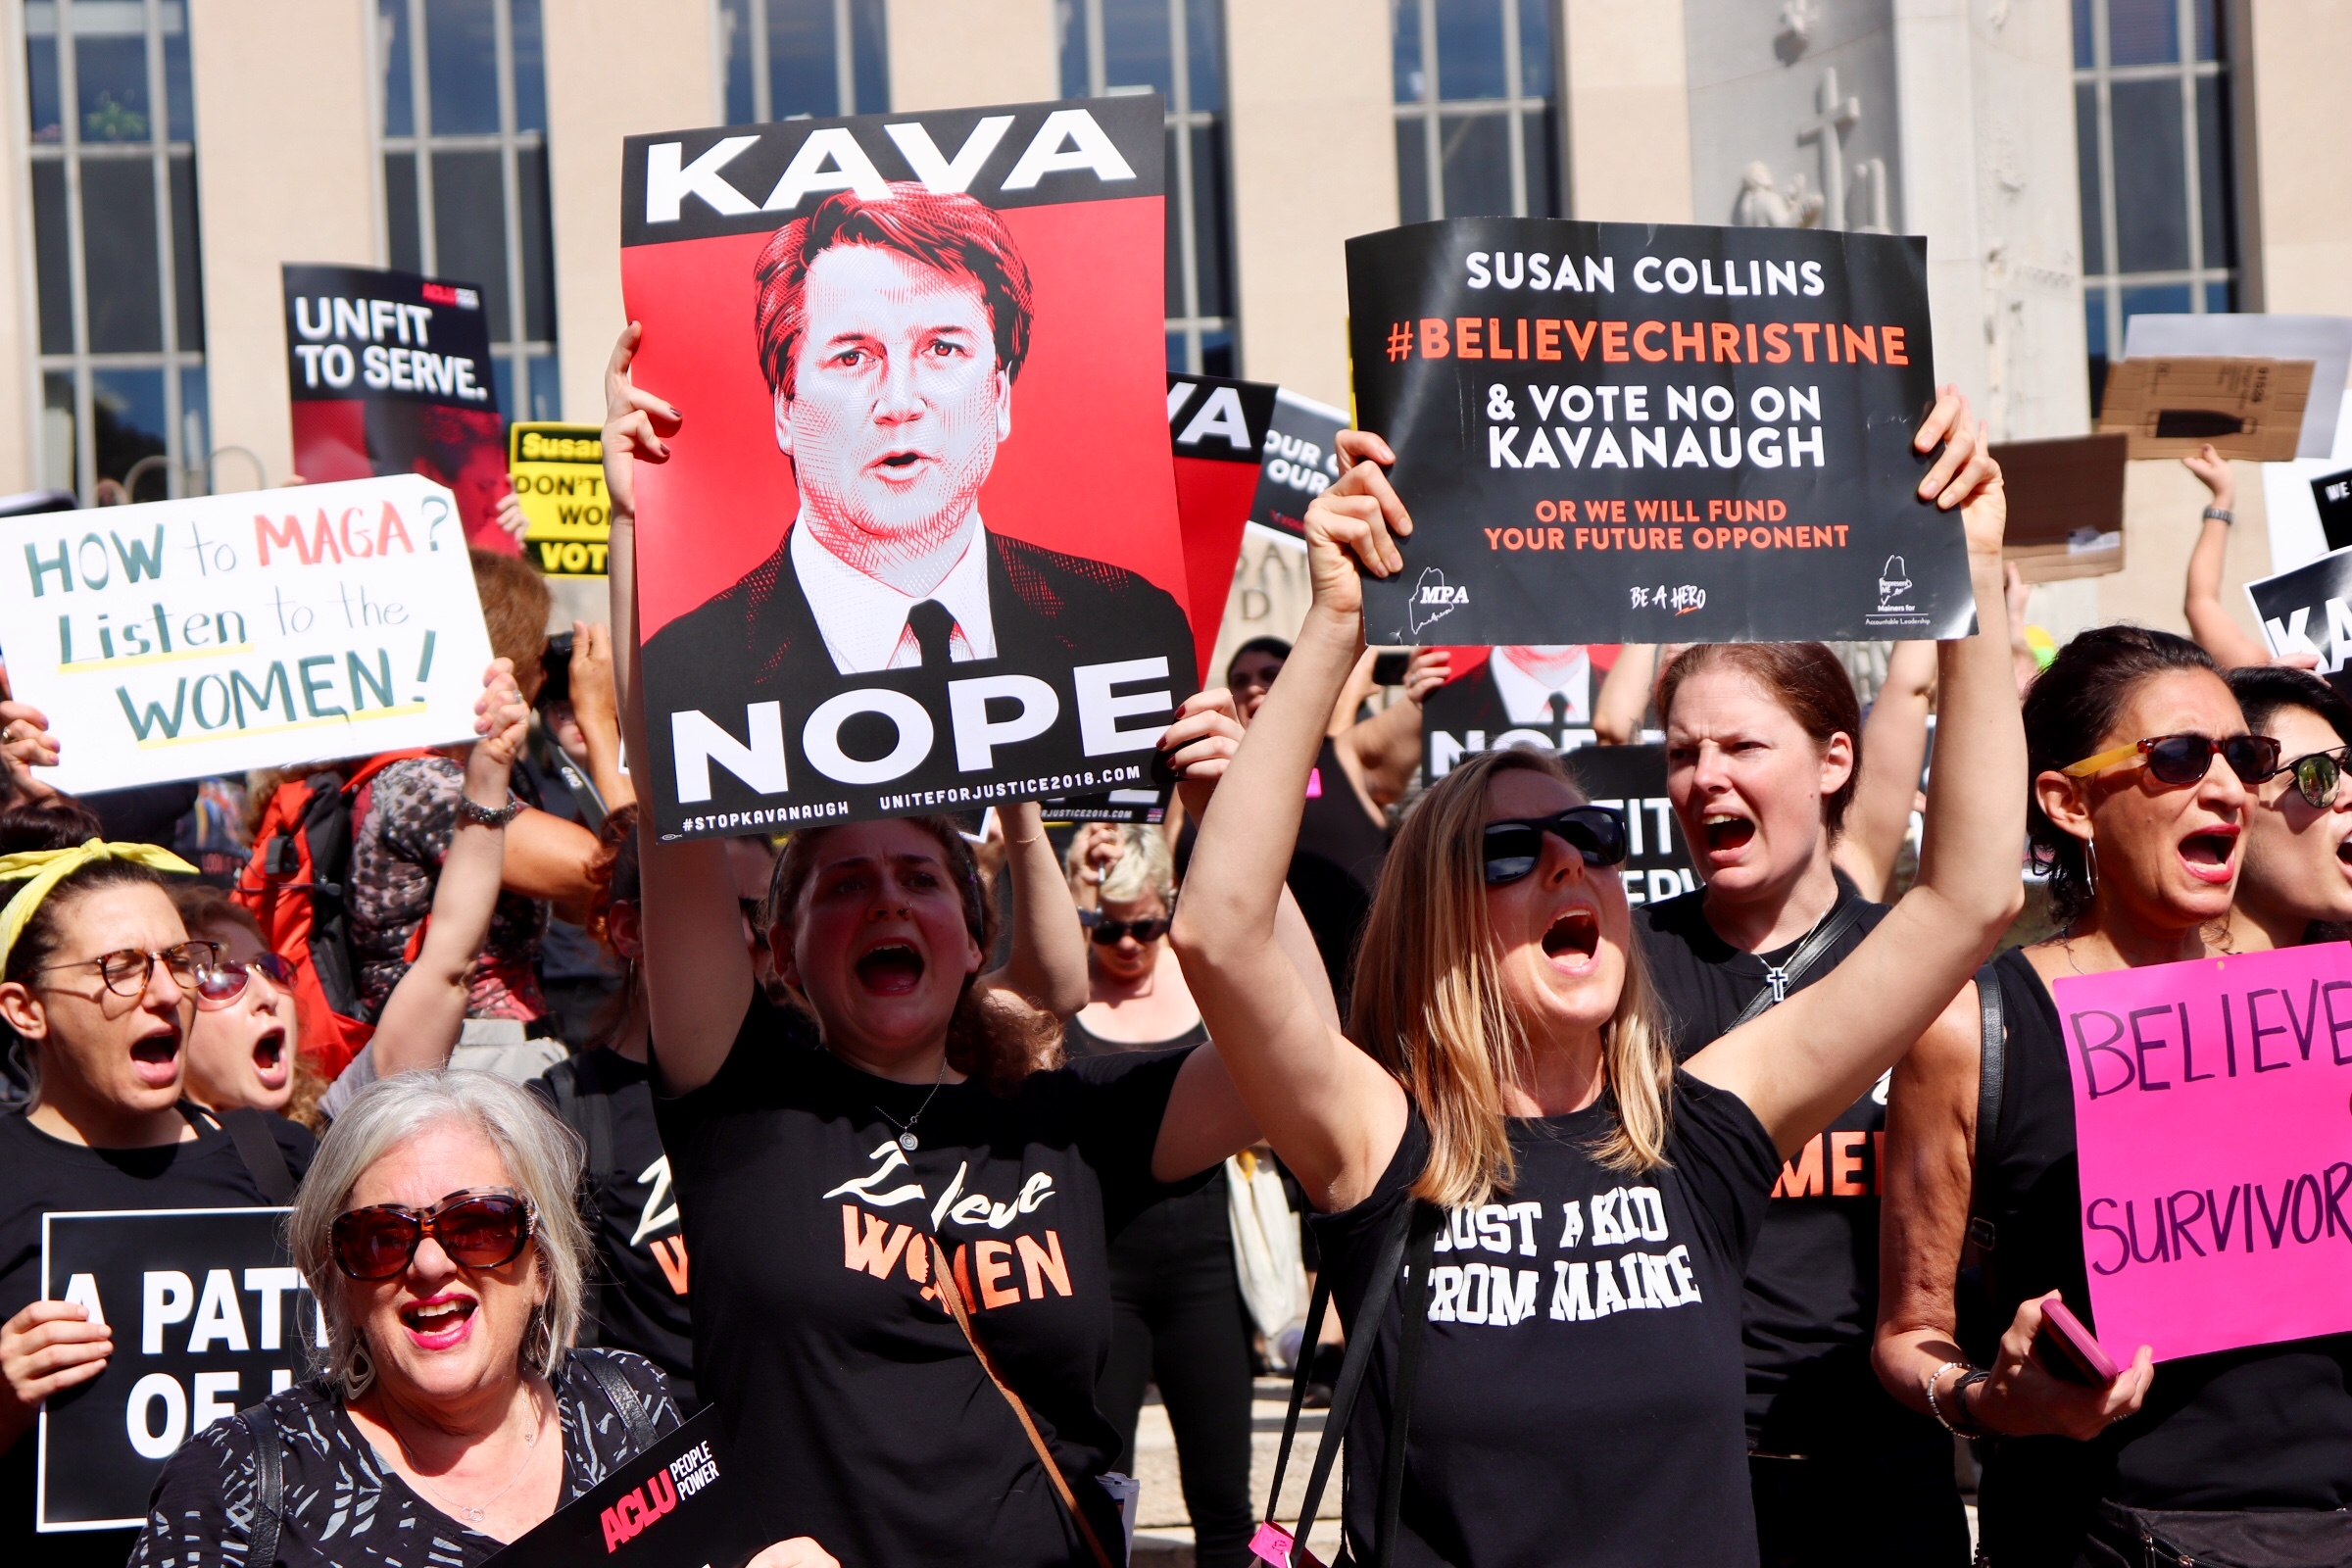 WASHINGTON - Protesters urged Congressman Collins to vote no on Kavanaugh (Albane Guichard/Capital News Service)